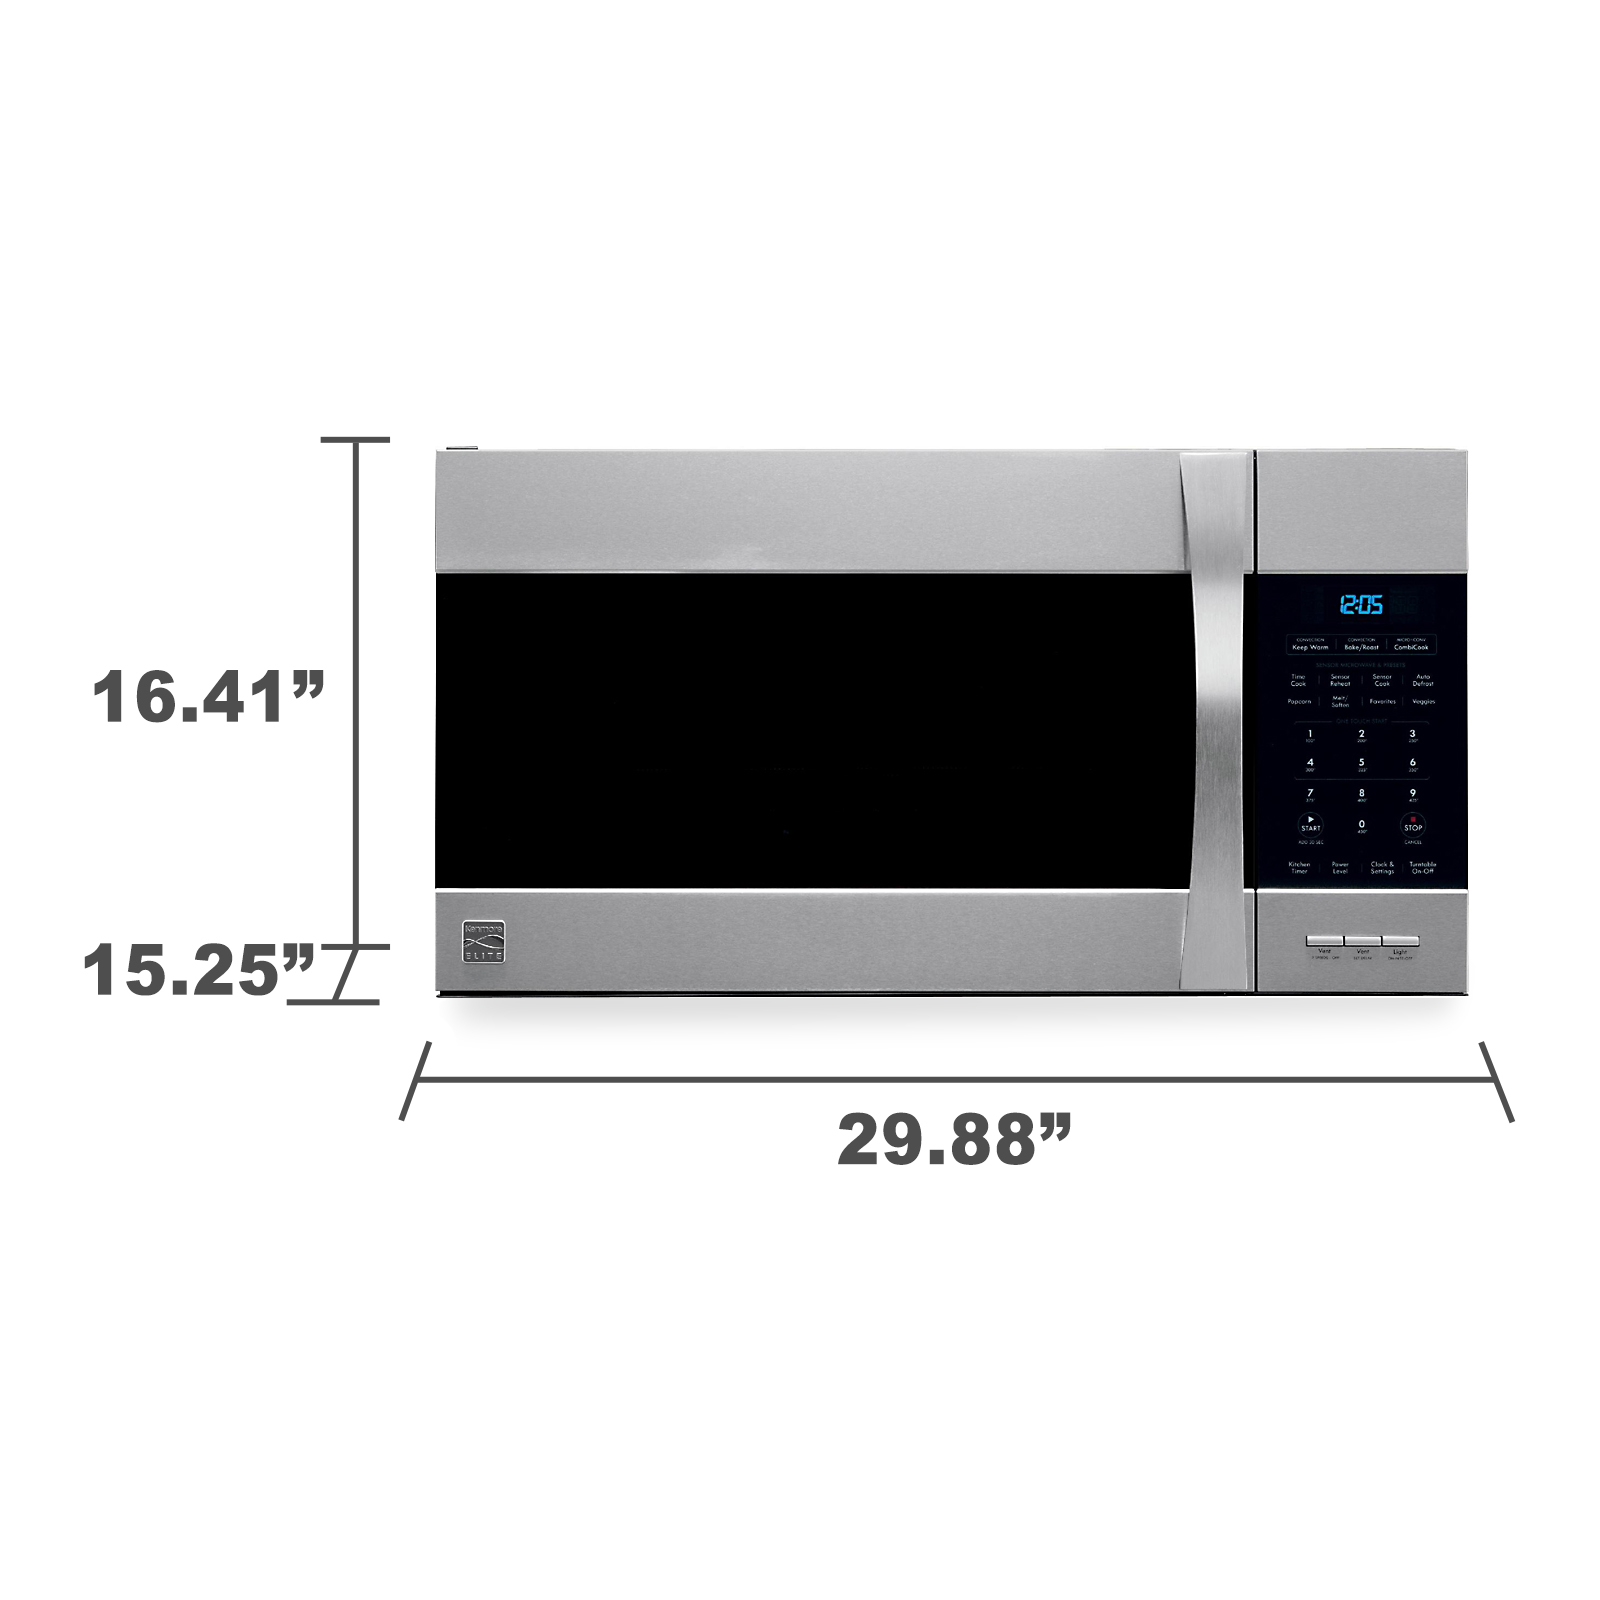 Kenmore Elite 80363 1.5 cu. ft. Over-the-Range Convection Microwave - Stainless Steel